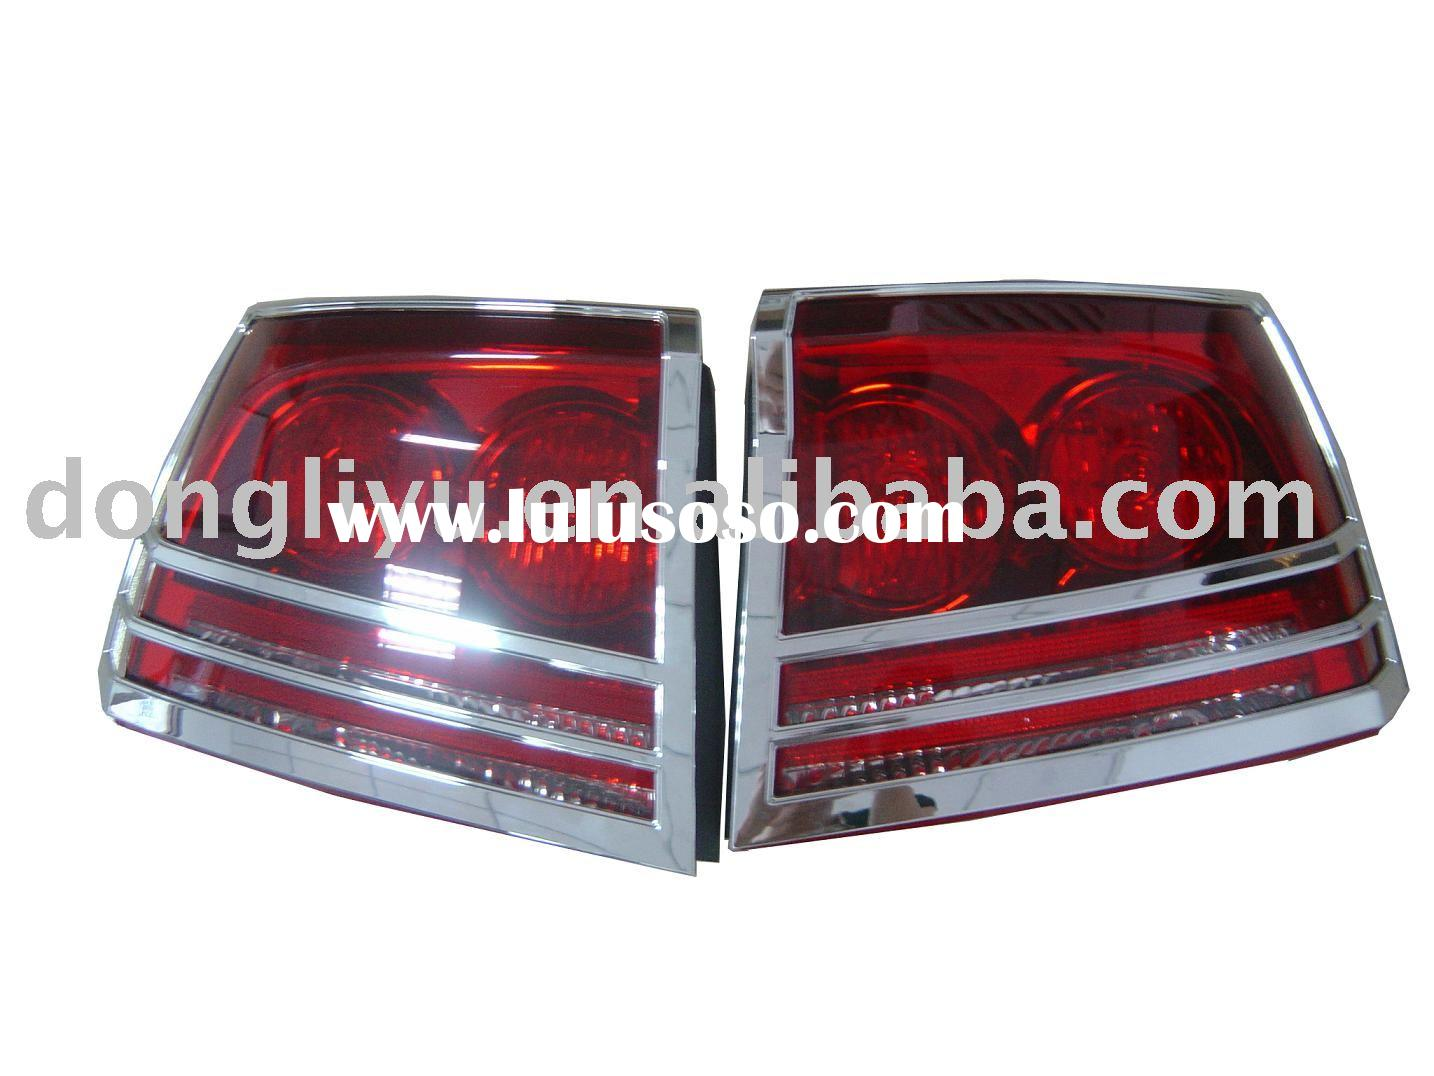 High quality car plastic ABS chrome tail light cover for dodge charger